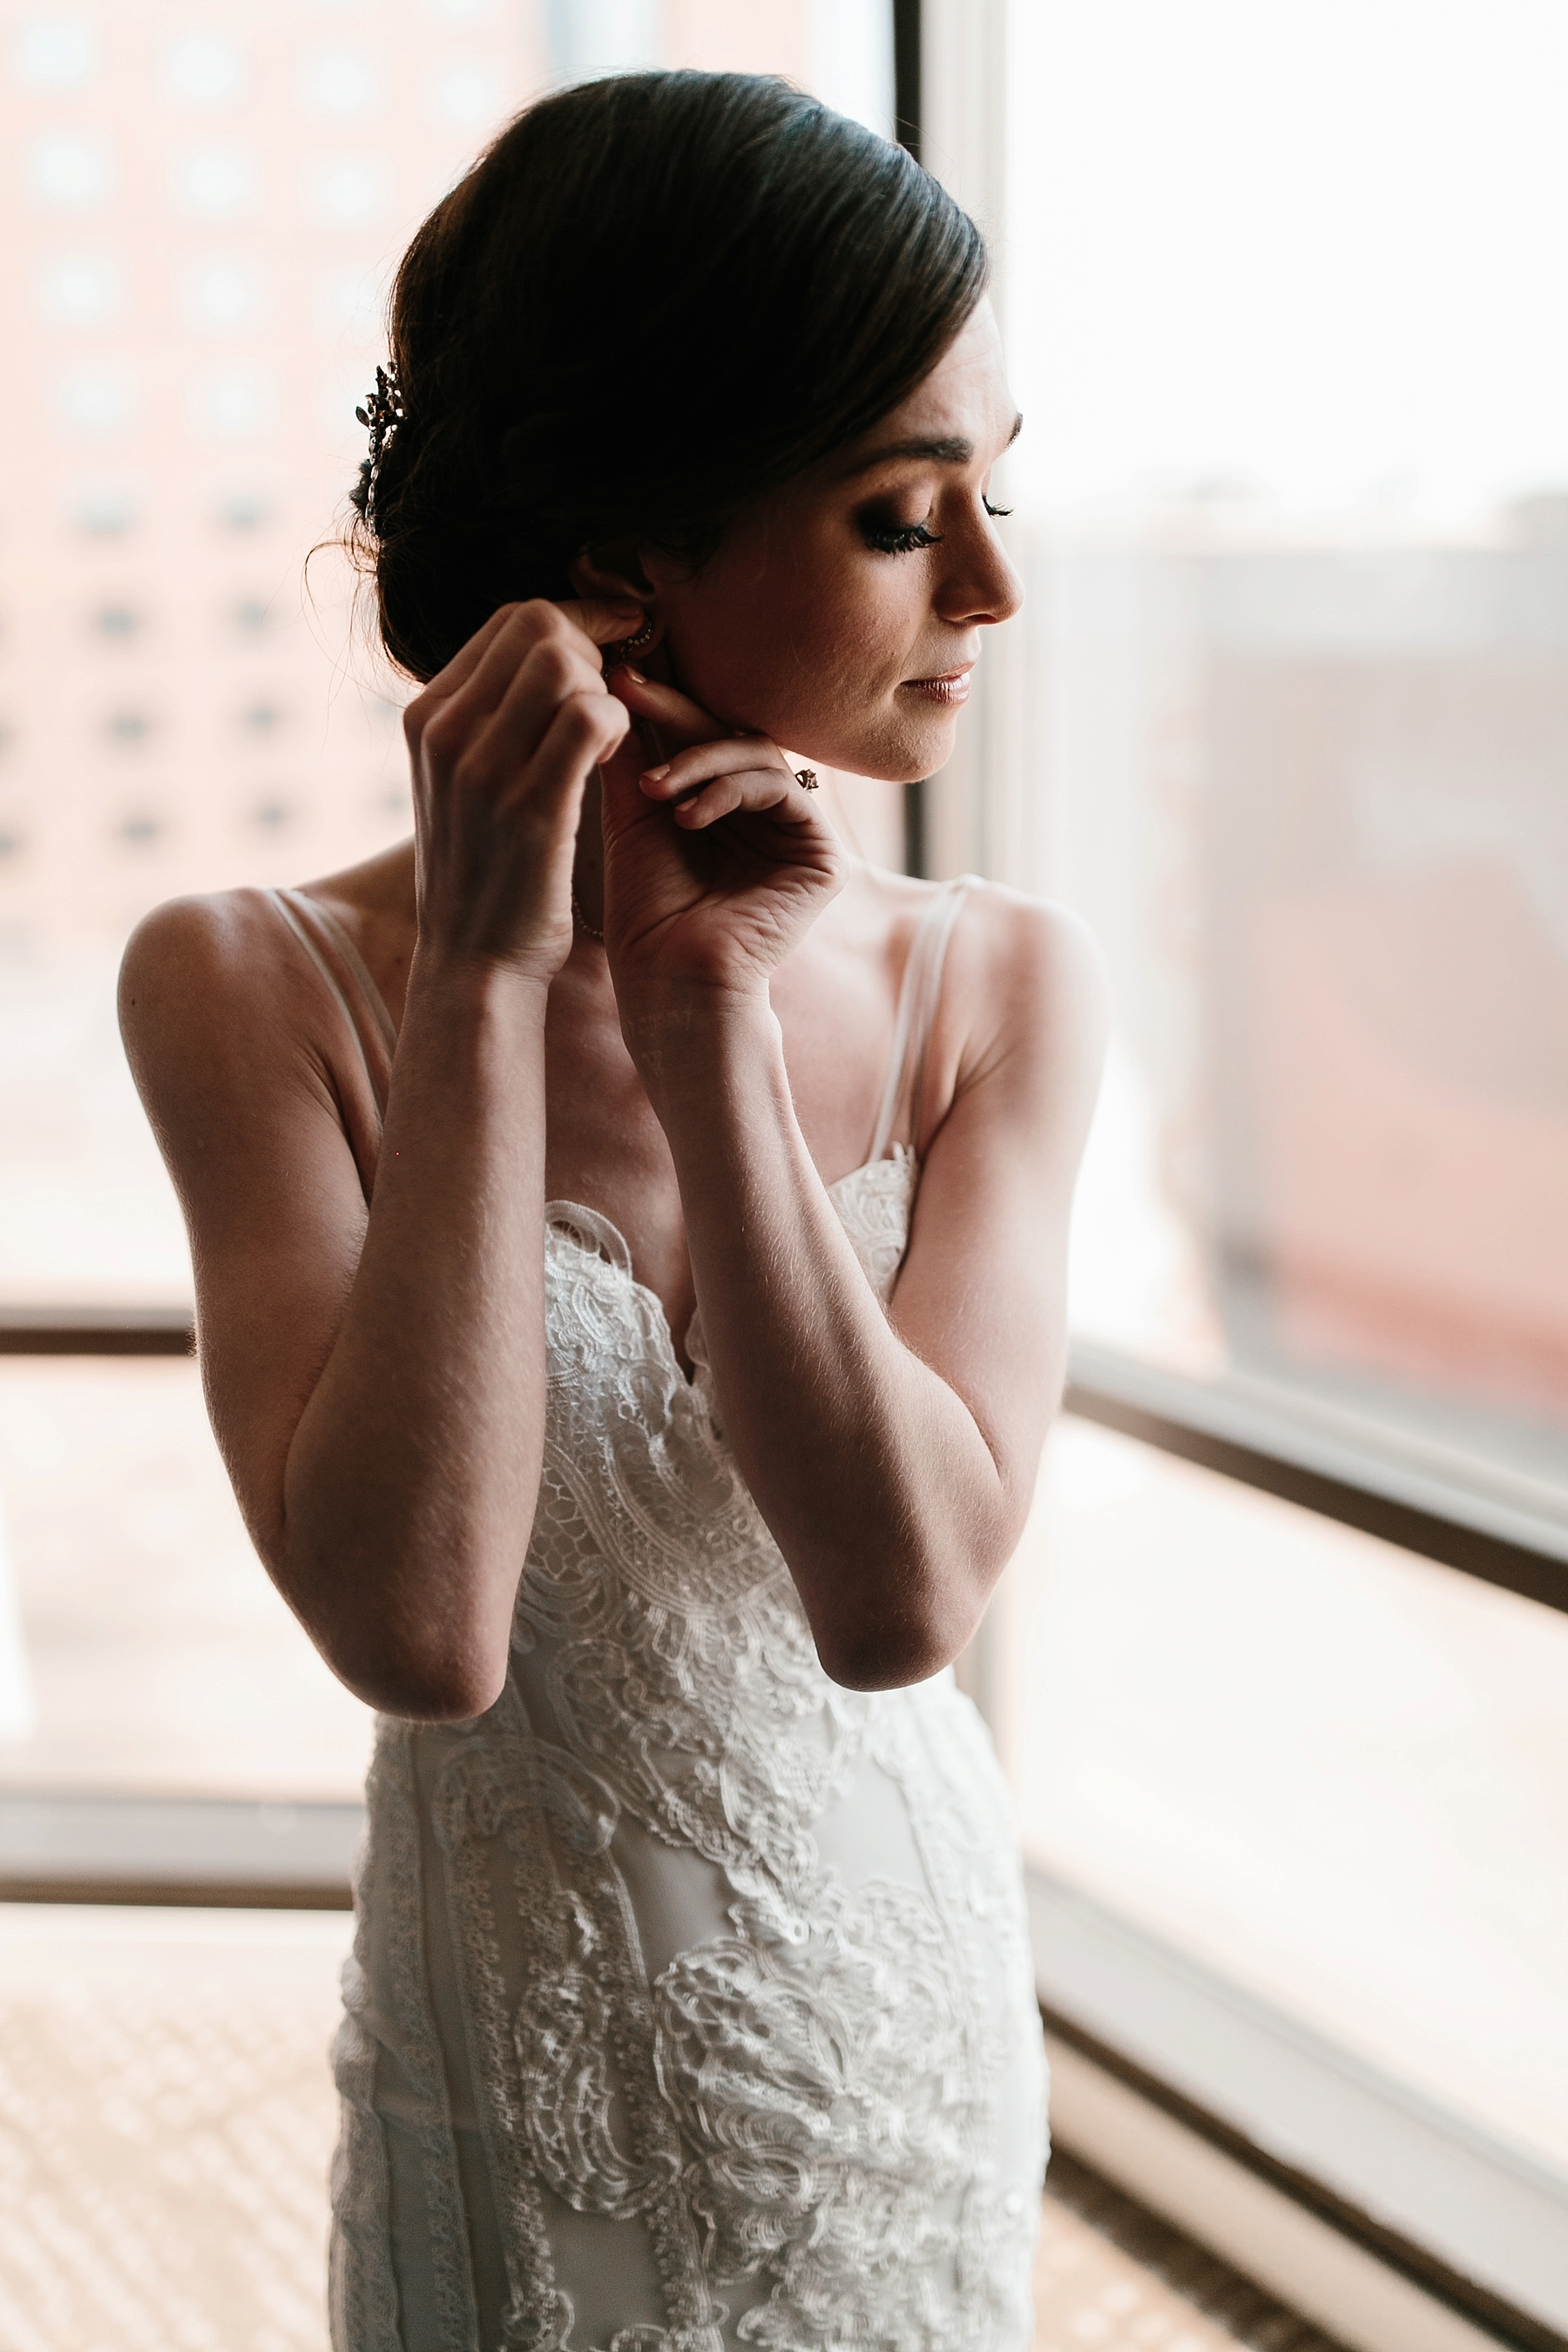 Emily + Caleb _ an elegant, intentional, industrial style wedding with navy + gold accents at 6500 in Dallas, TX by North Texas Wedding Photographer Rachel Meagan Photography _ 043